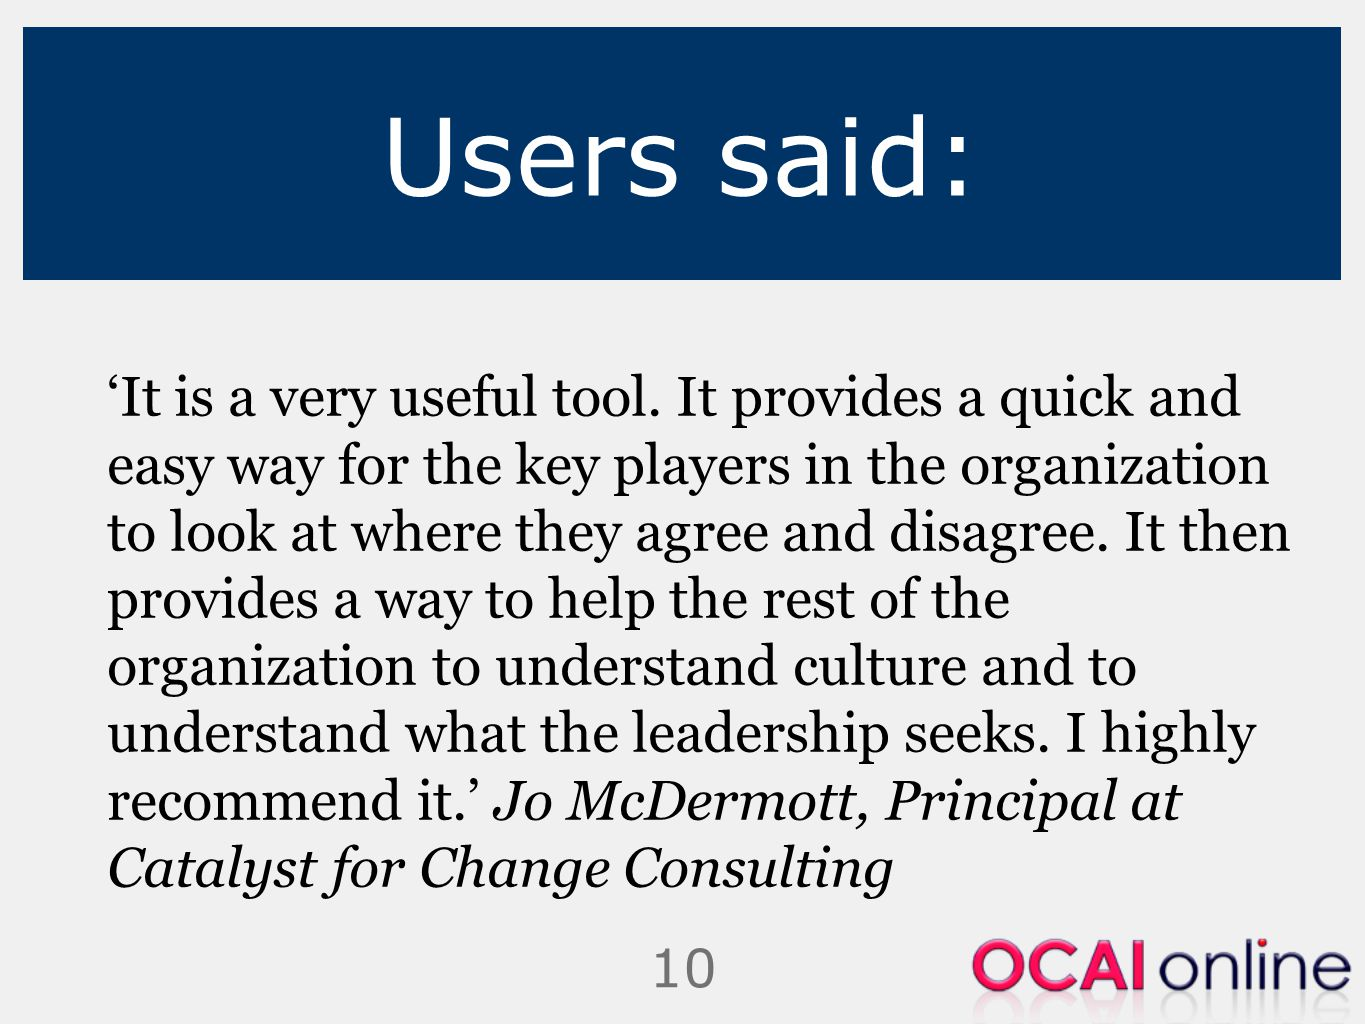 Users said: 'It is a very useful tool. It provides a quick and easy way for the key players in the organization to look at where they agree and disagr